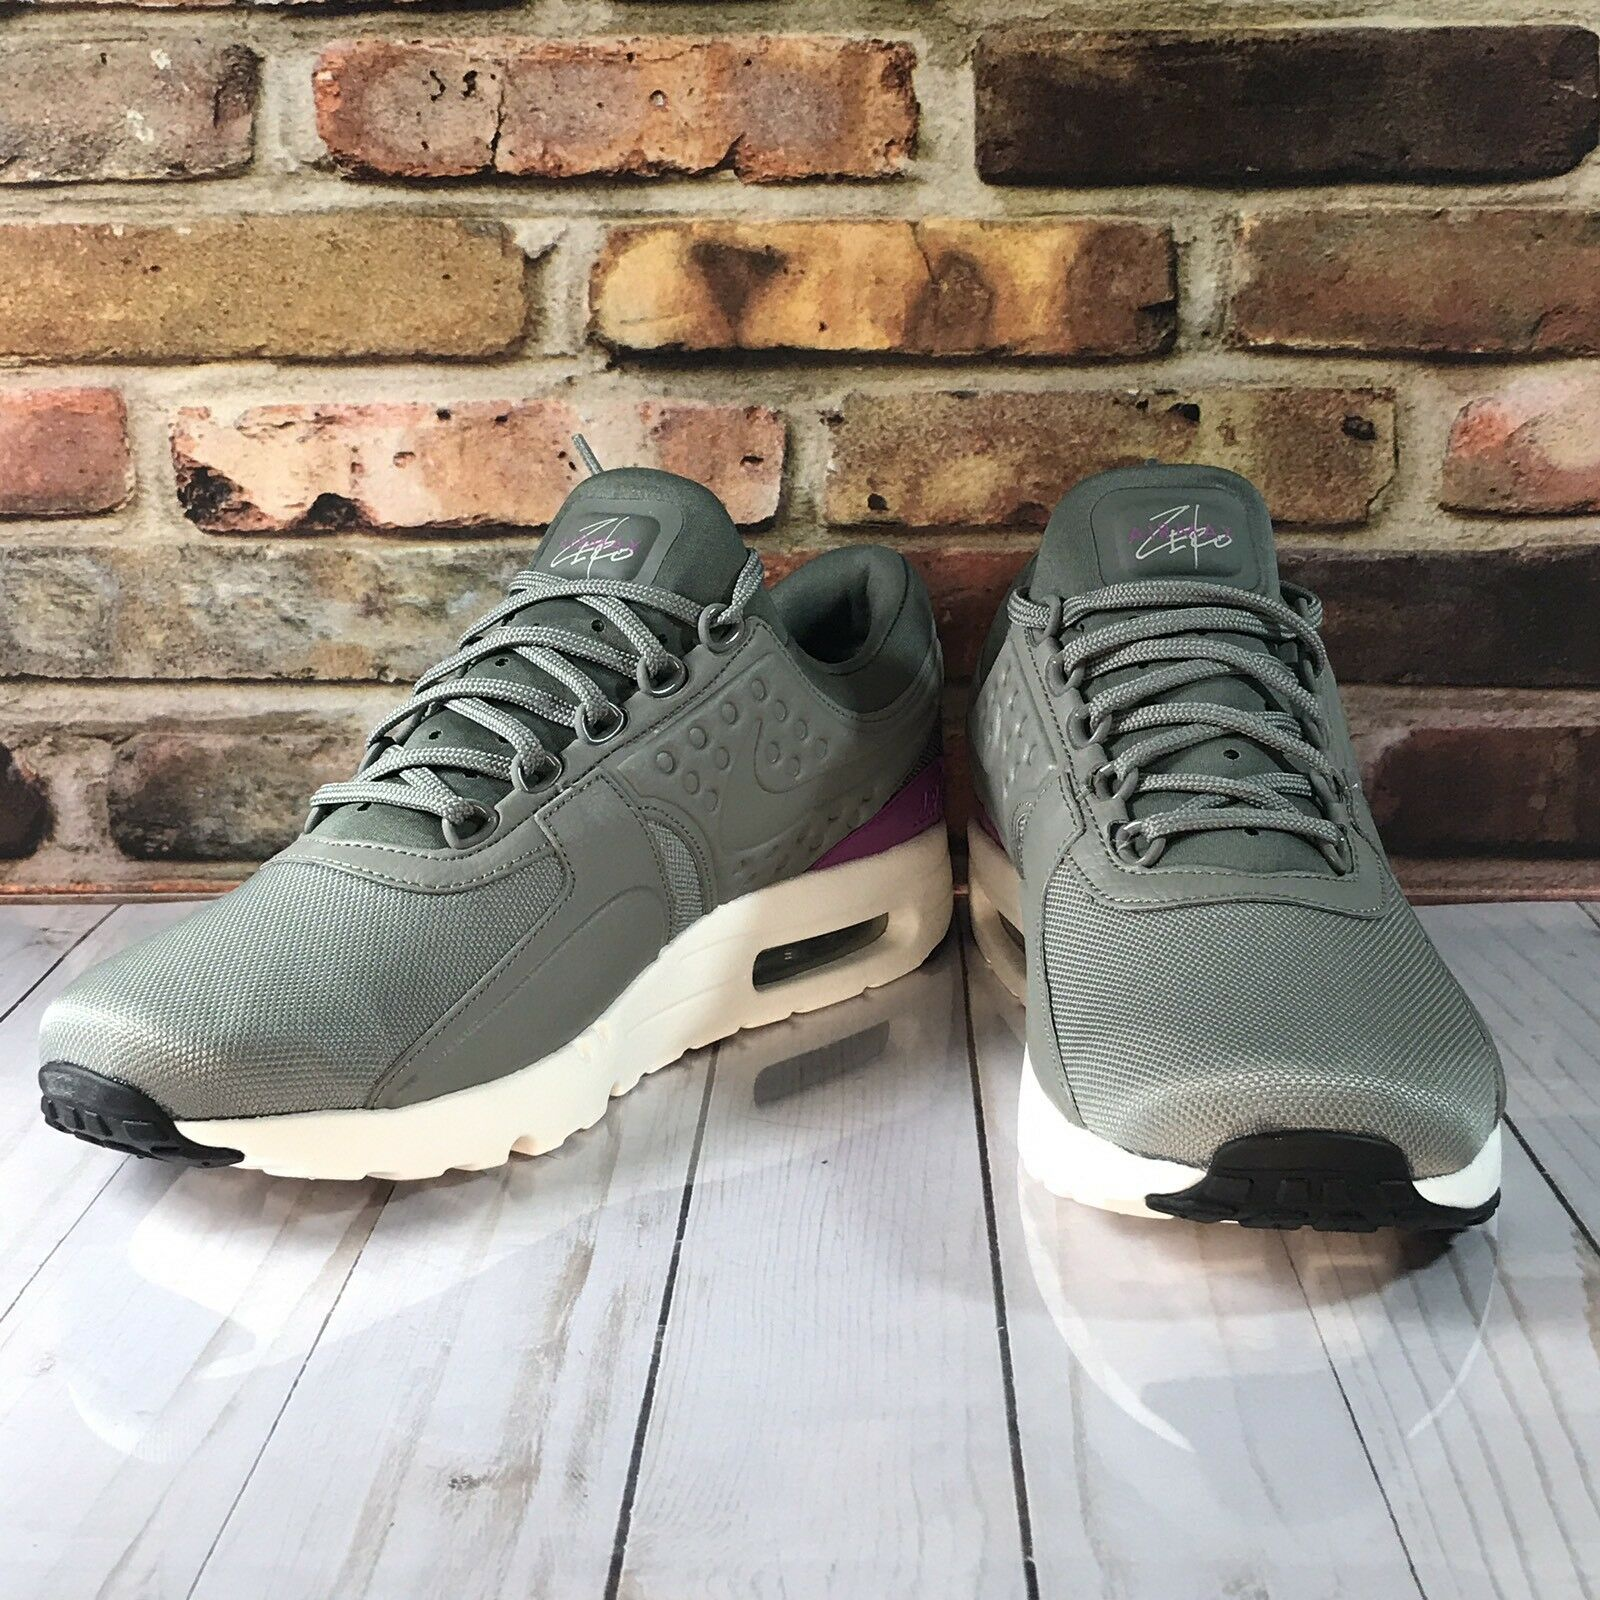 Nike Air Max ZERO PREMIUM  Size Size Size 9 881982 004  Grey Retro Running shoes 2017 33e9bc